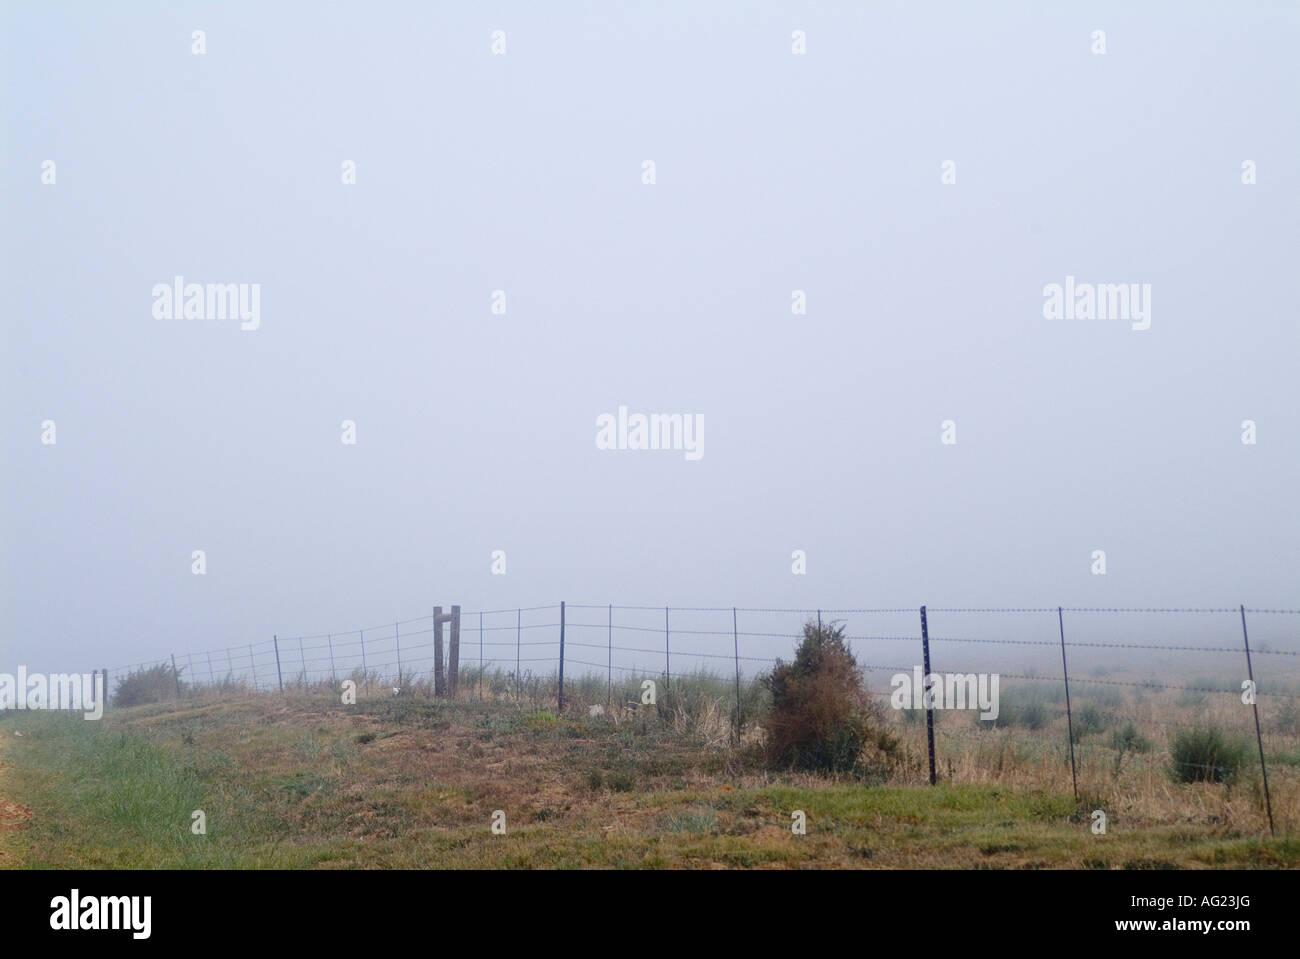 A barbed wire farm fence appears as the cold early morning mist warms in the sun - Stock Image